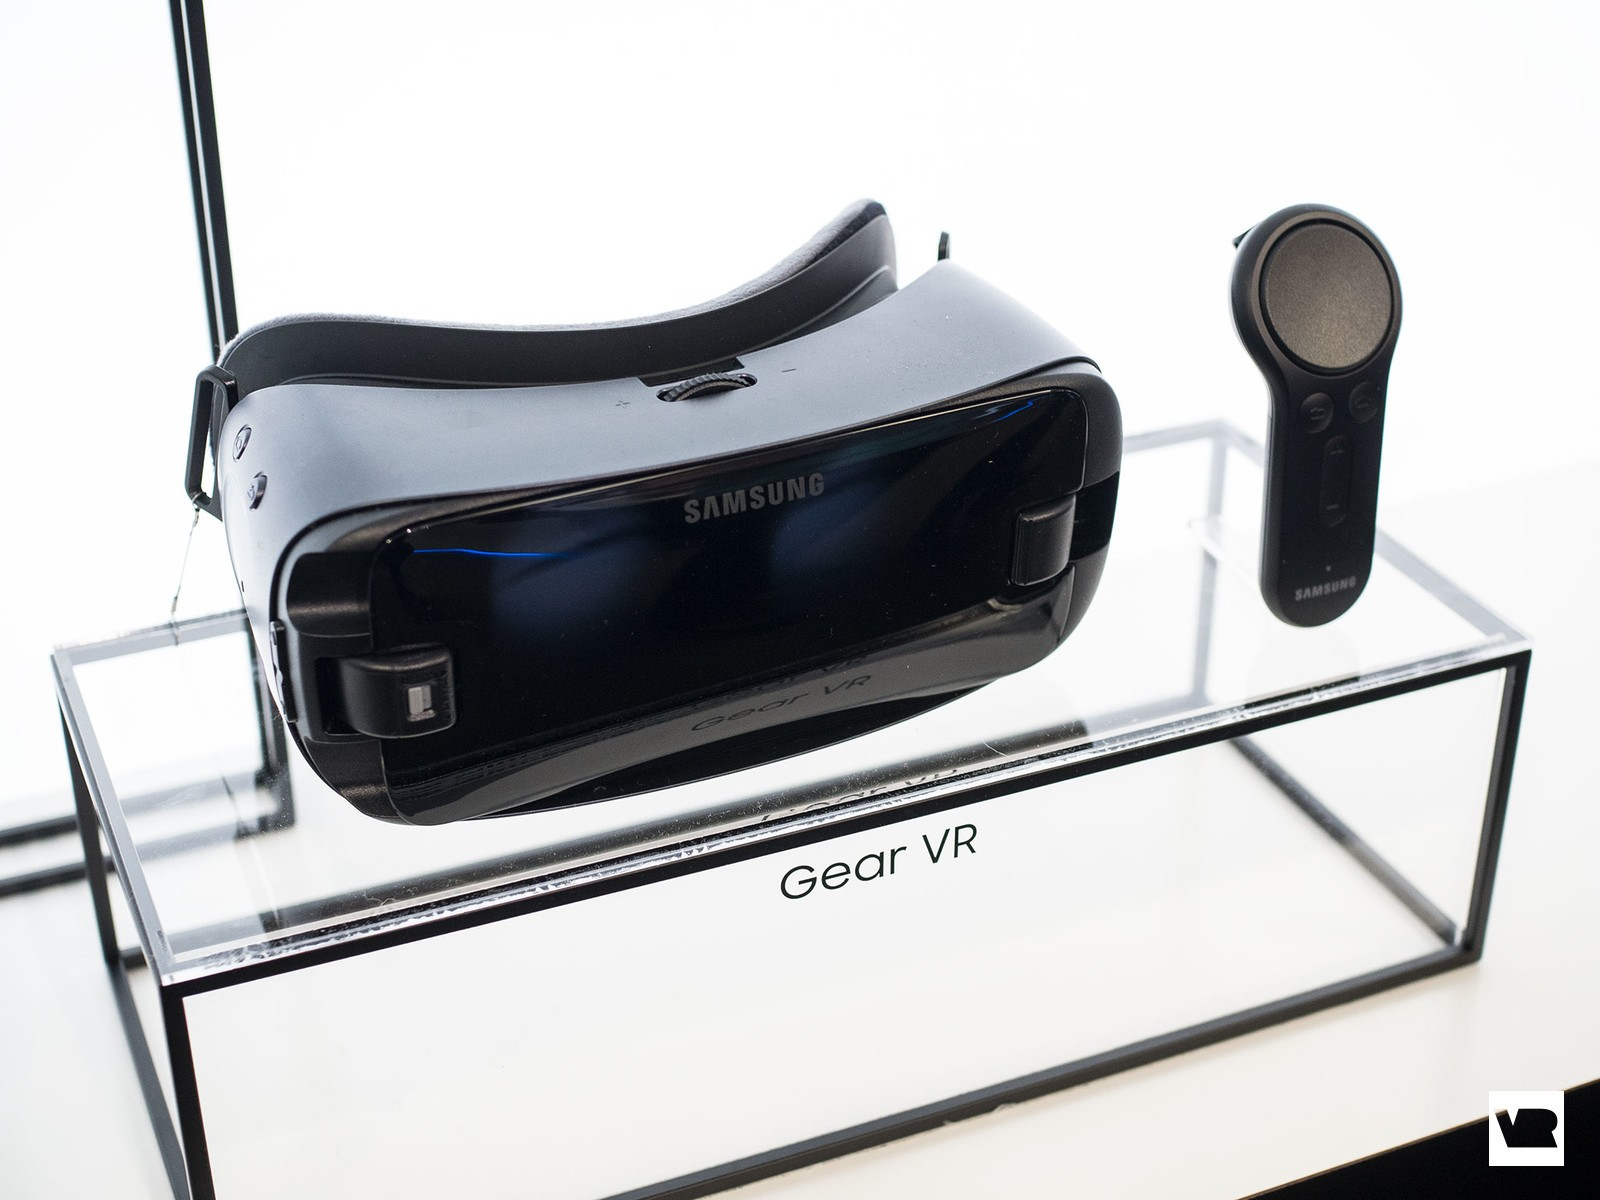 647566fb7d07 Samsung Gear VR (2017) vs. Gear VR (2016)  What s different